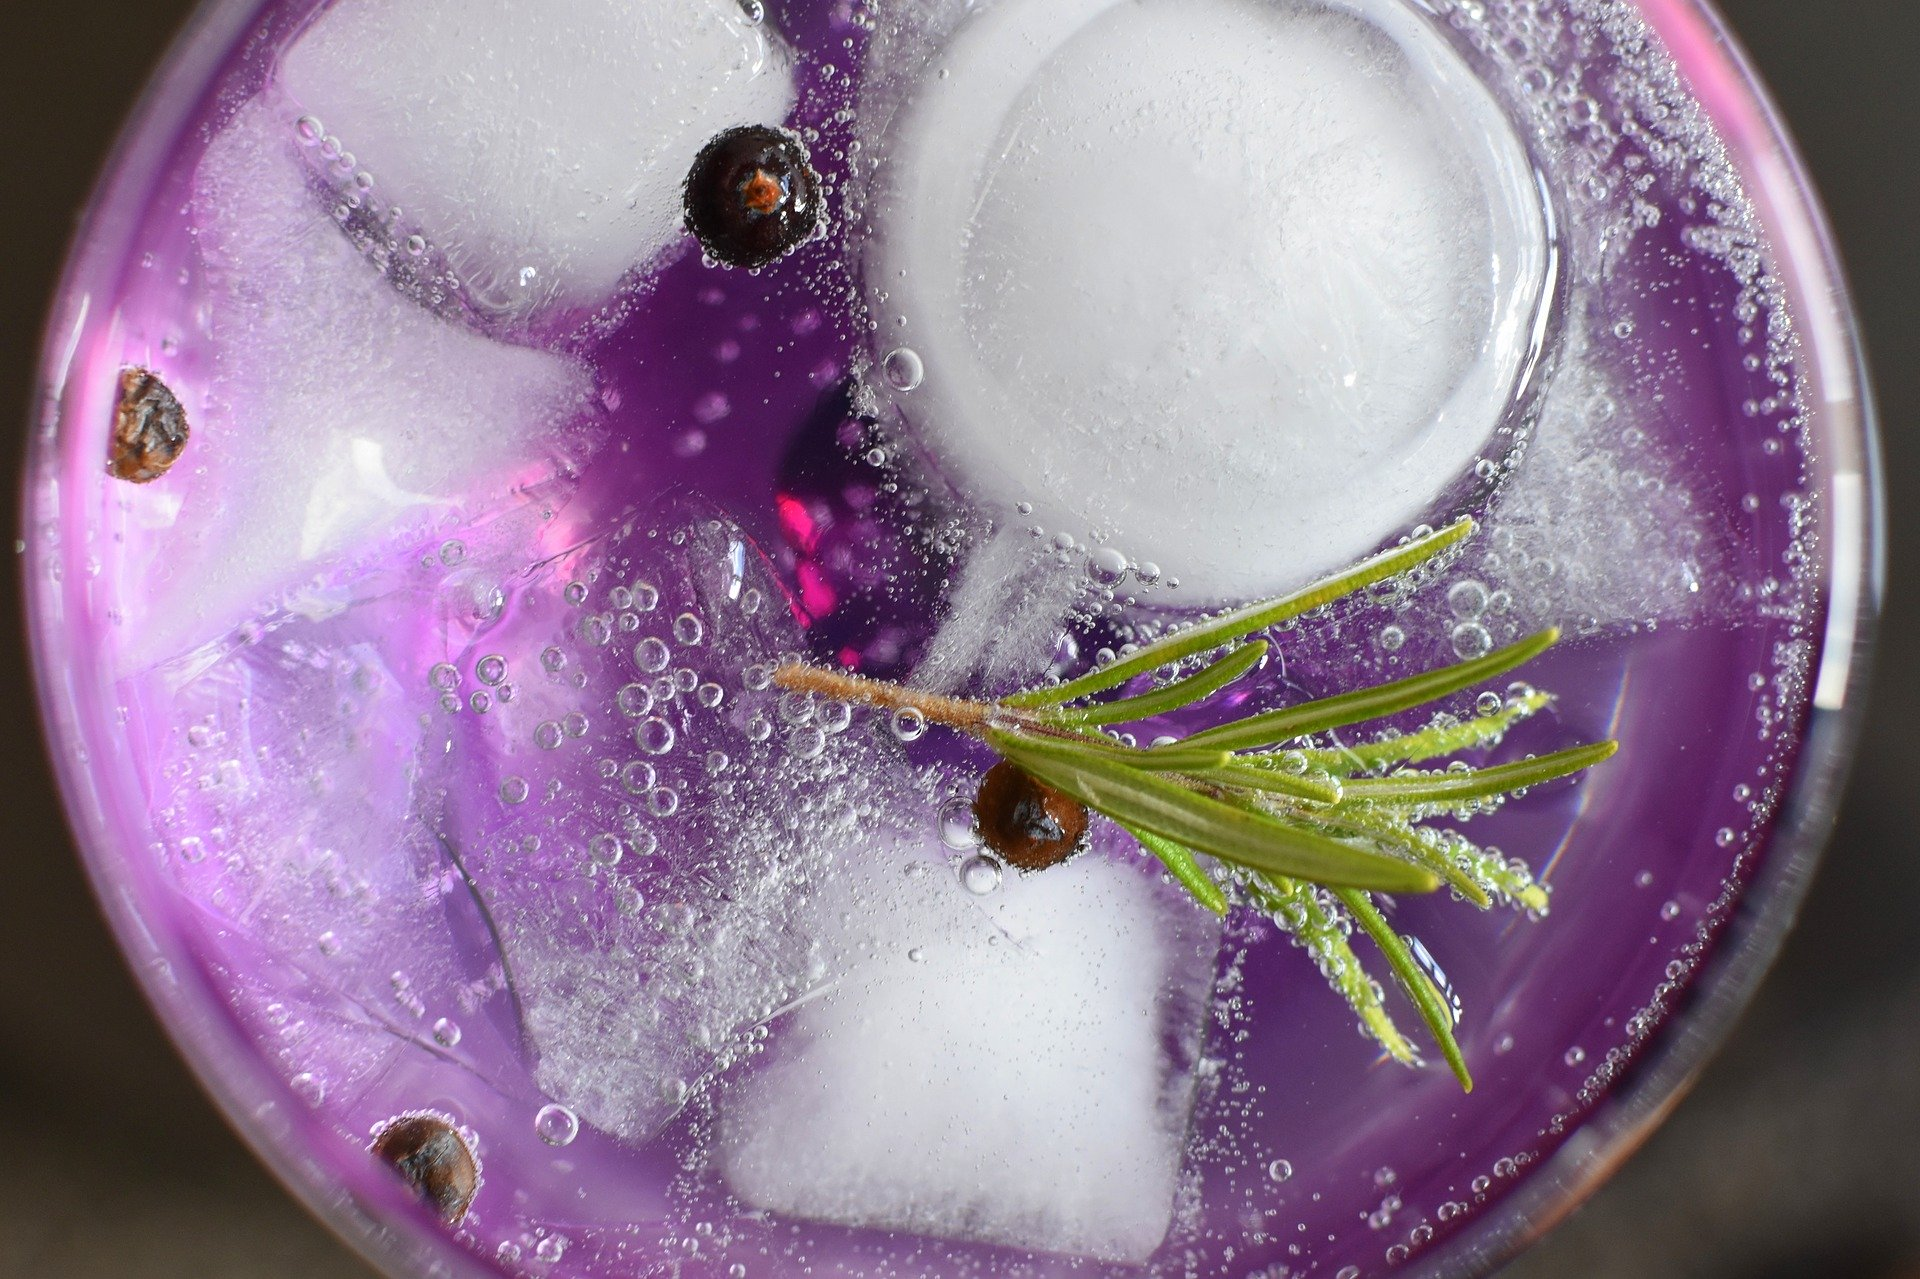 The Gen On Gin: The Craft Gin Scene Is A Phenomenon – But Beware Of Fakes photo